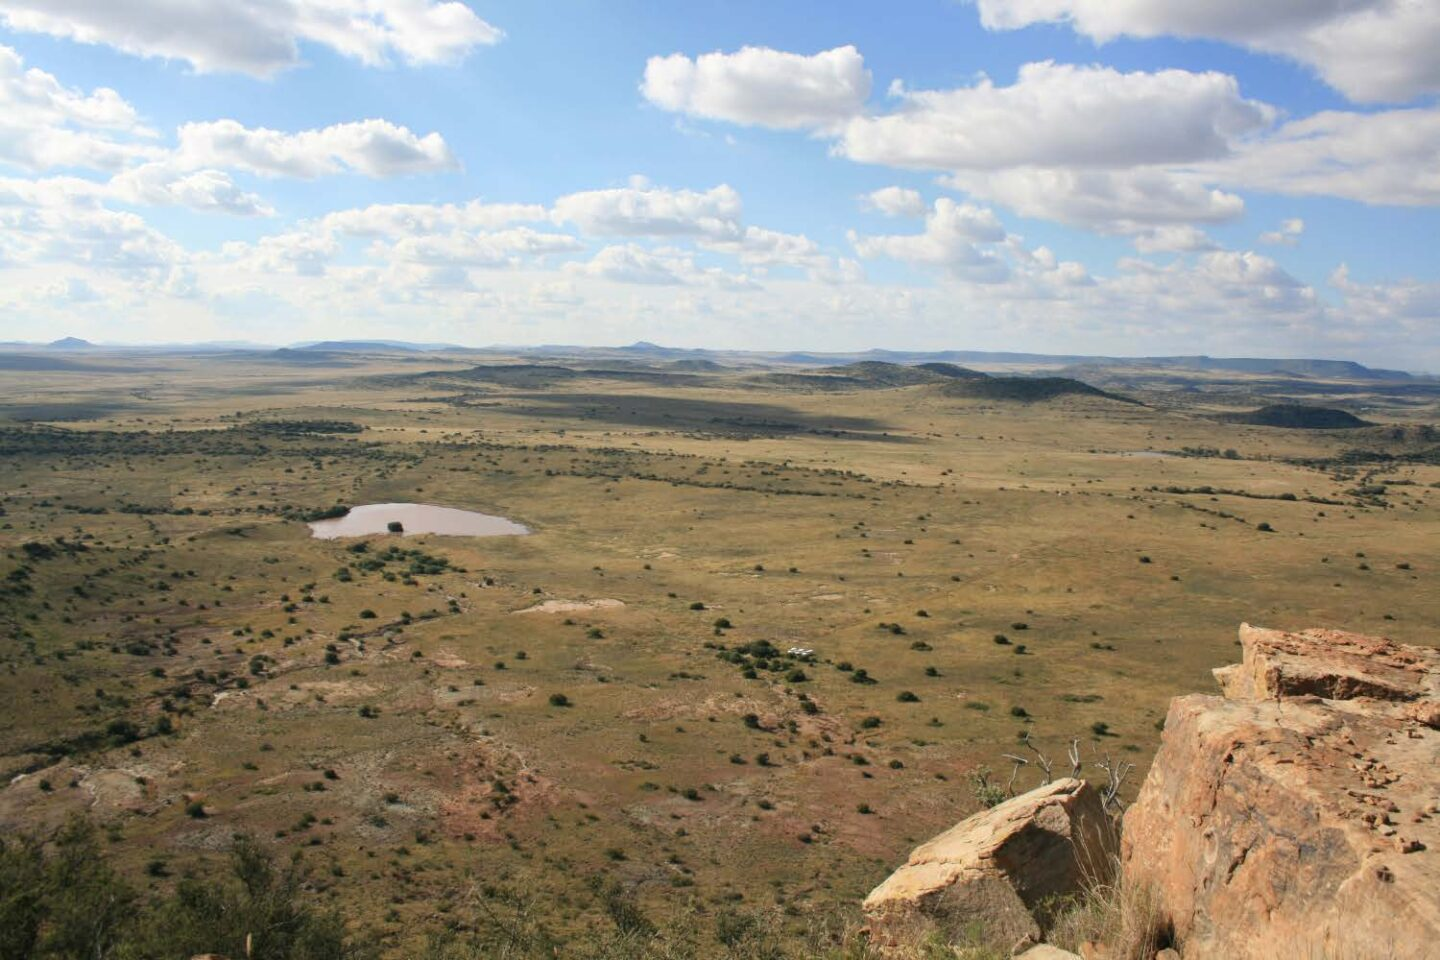 Fairydale, Bethulie is one of the extensively studied Permo-Triassic Boundary sites in South Africa's Karoo Basin.